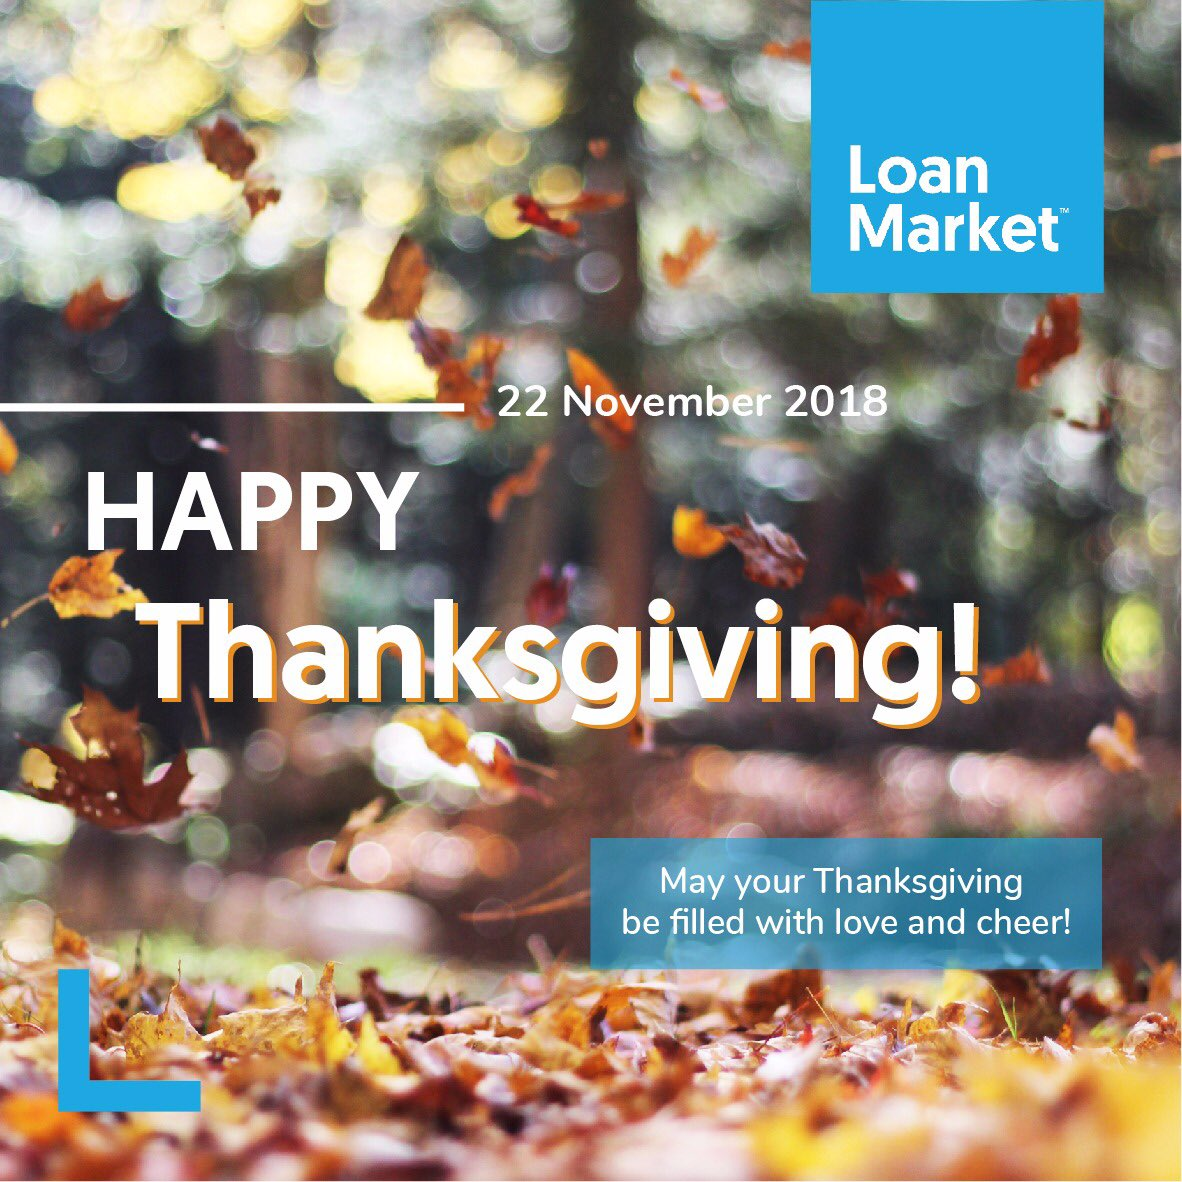 This is a special day to count our blessings and all things that we are grateful for. Happy Thanksgiving everyone!  #loanmarketindonesia #loanadviser #mortgage #mortgagebroker #loan #kpr #pinjaman #modalusaha #refinancing #thanksgiving #happythanksgiving #blessings #november2018pic.twitter.com/x9fFv55Kuc